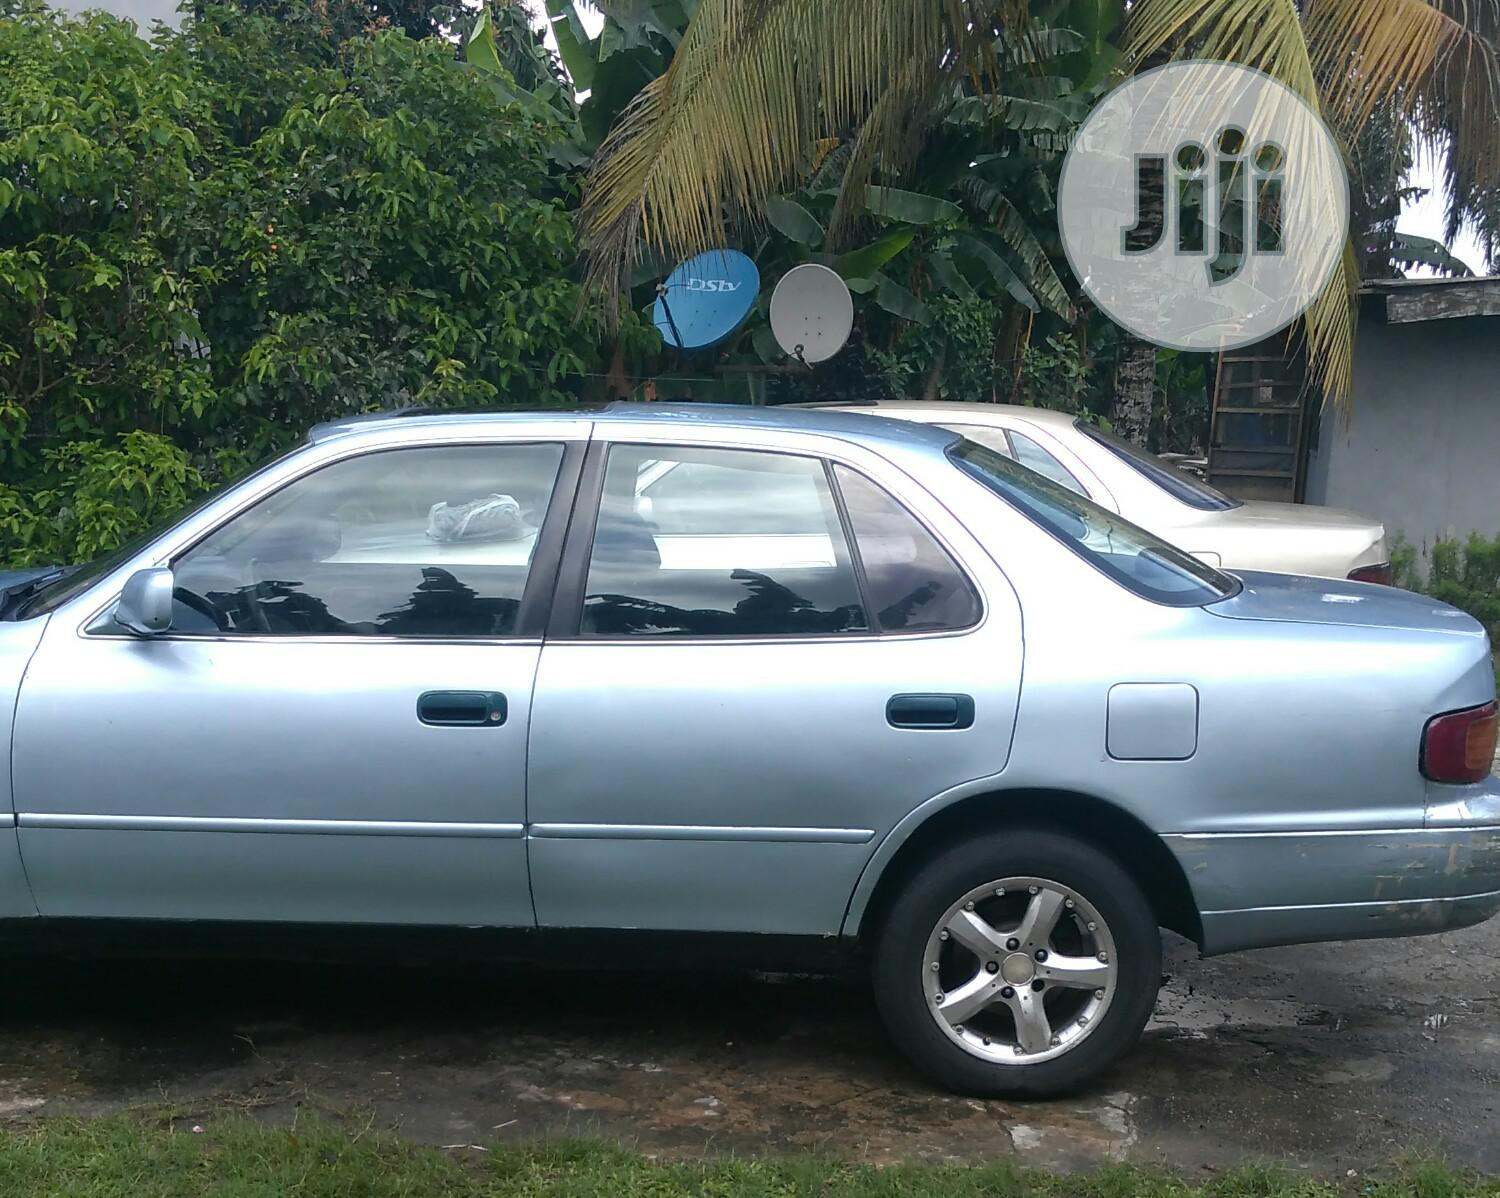 Toyota Camry 1996 Le Coupe Blue In Port Harcourt Cars Lukman Alimi Jiji Ng For Sale In Port Harcourt Buy Cars From Lukman Alimi On Jiji Ng